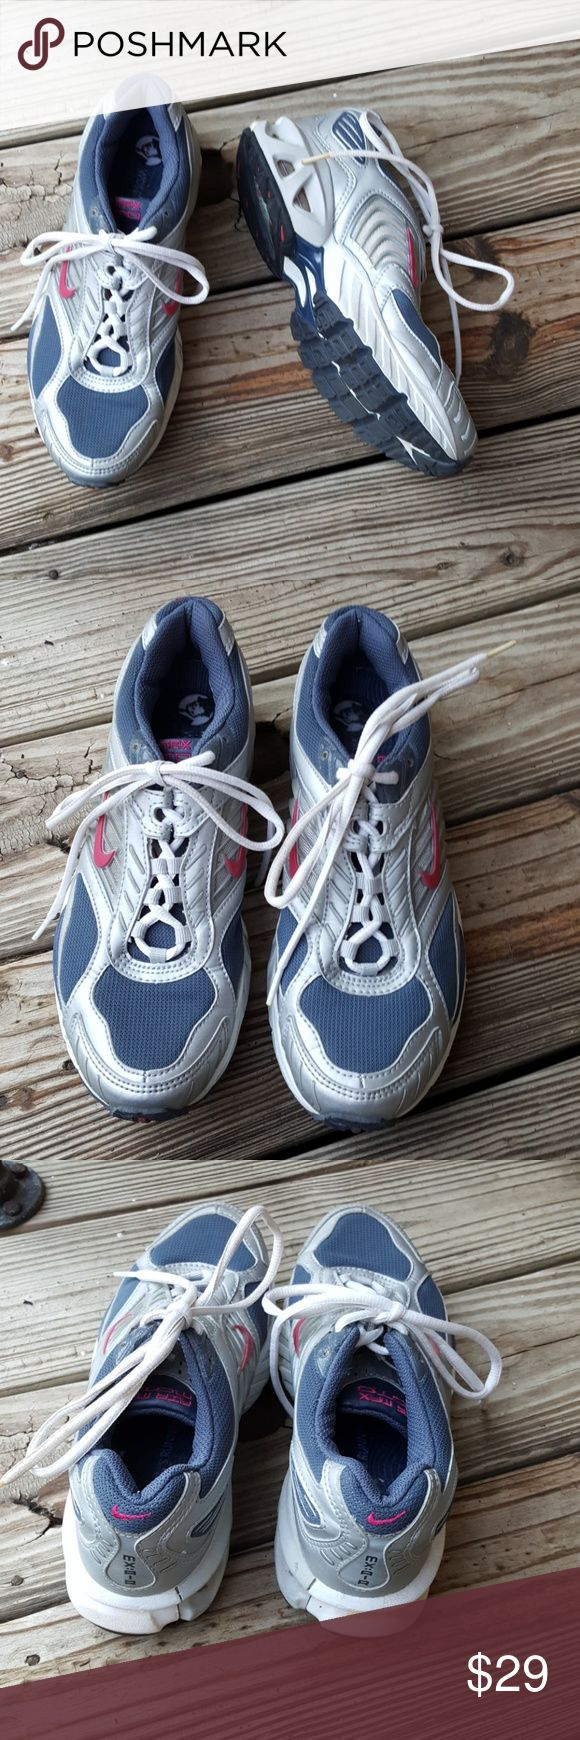 8 nike air max moto Excellent used condition men's running shoes Nike Air Max Moto Nike Shoes Sneakers